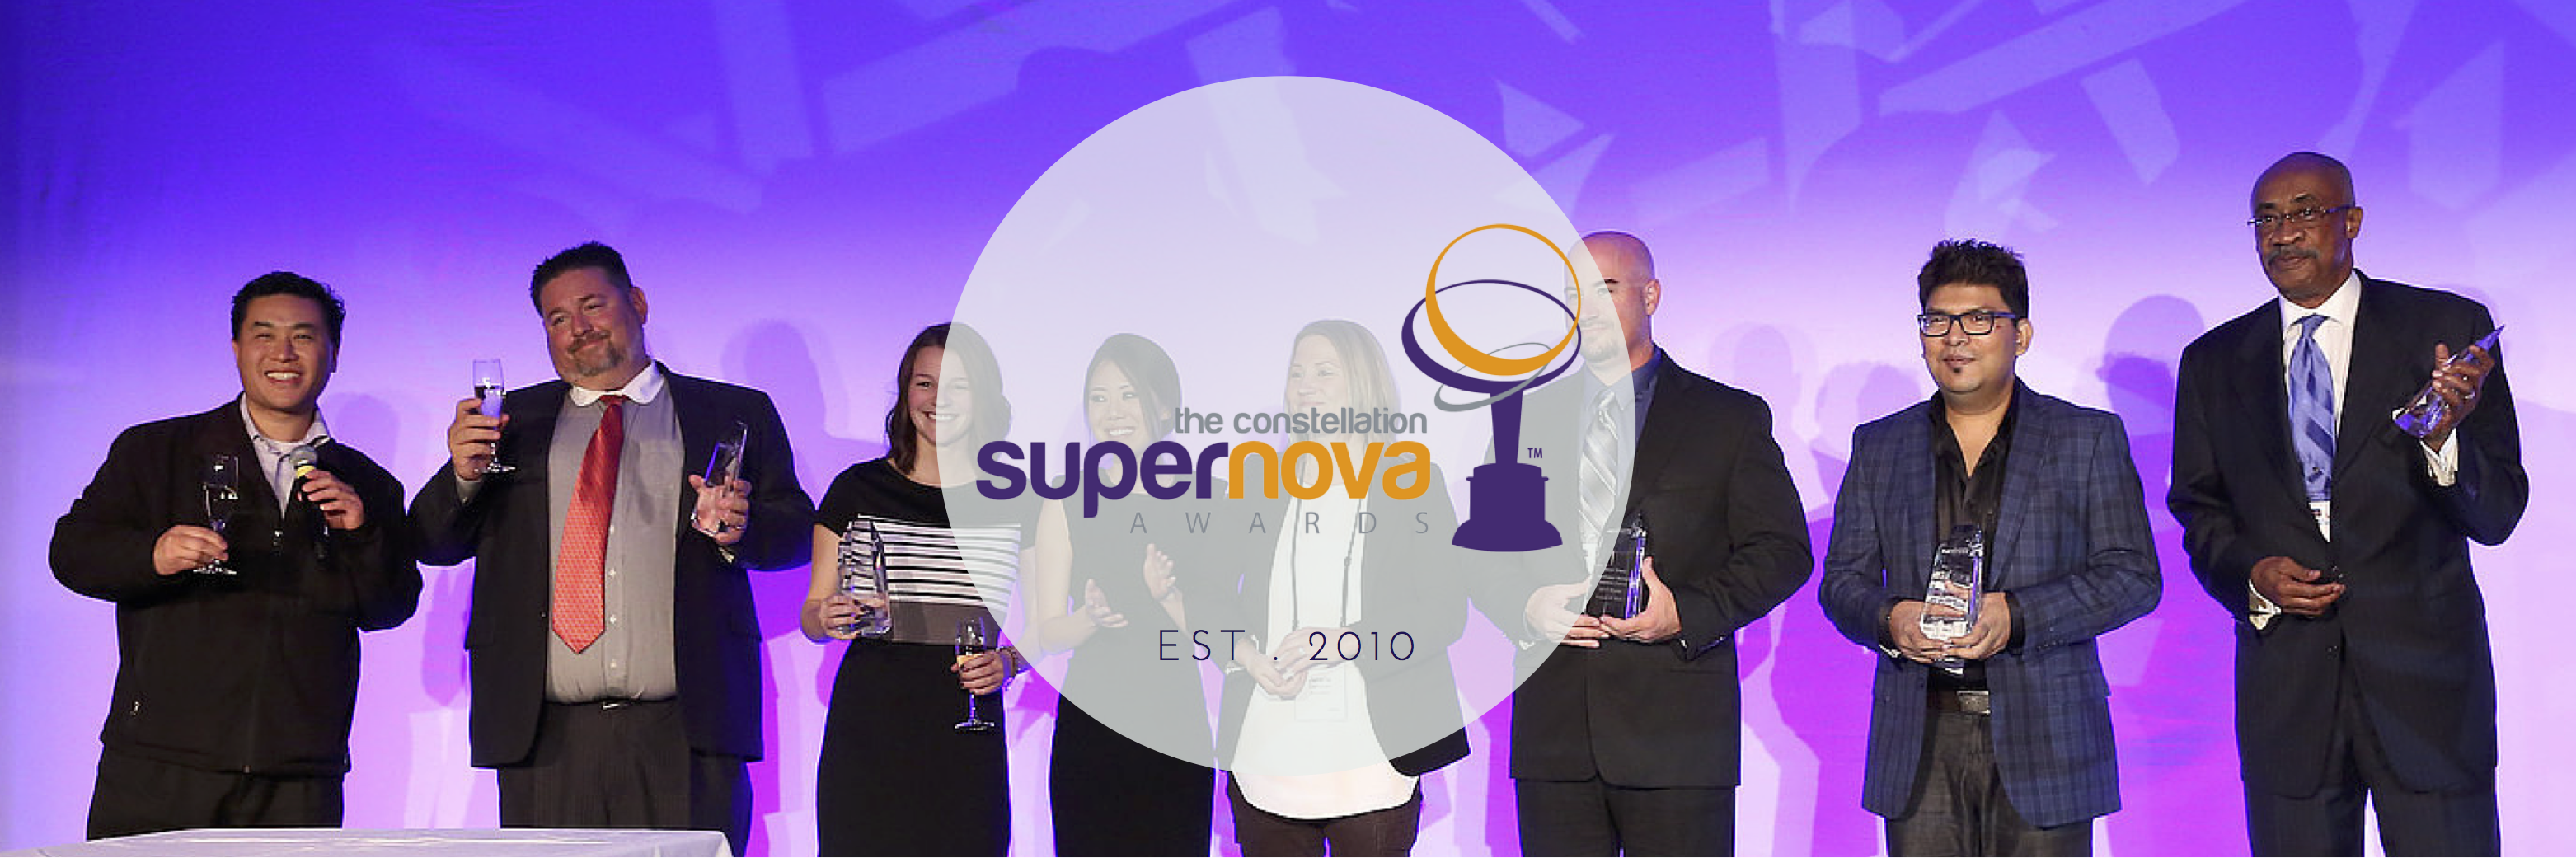 Constellation SuperNova Awards for leaders in digital business